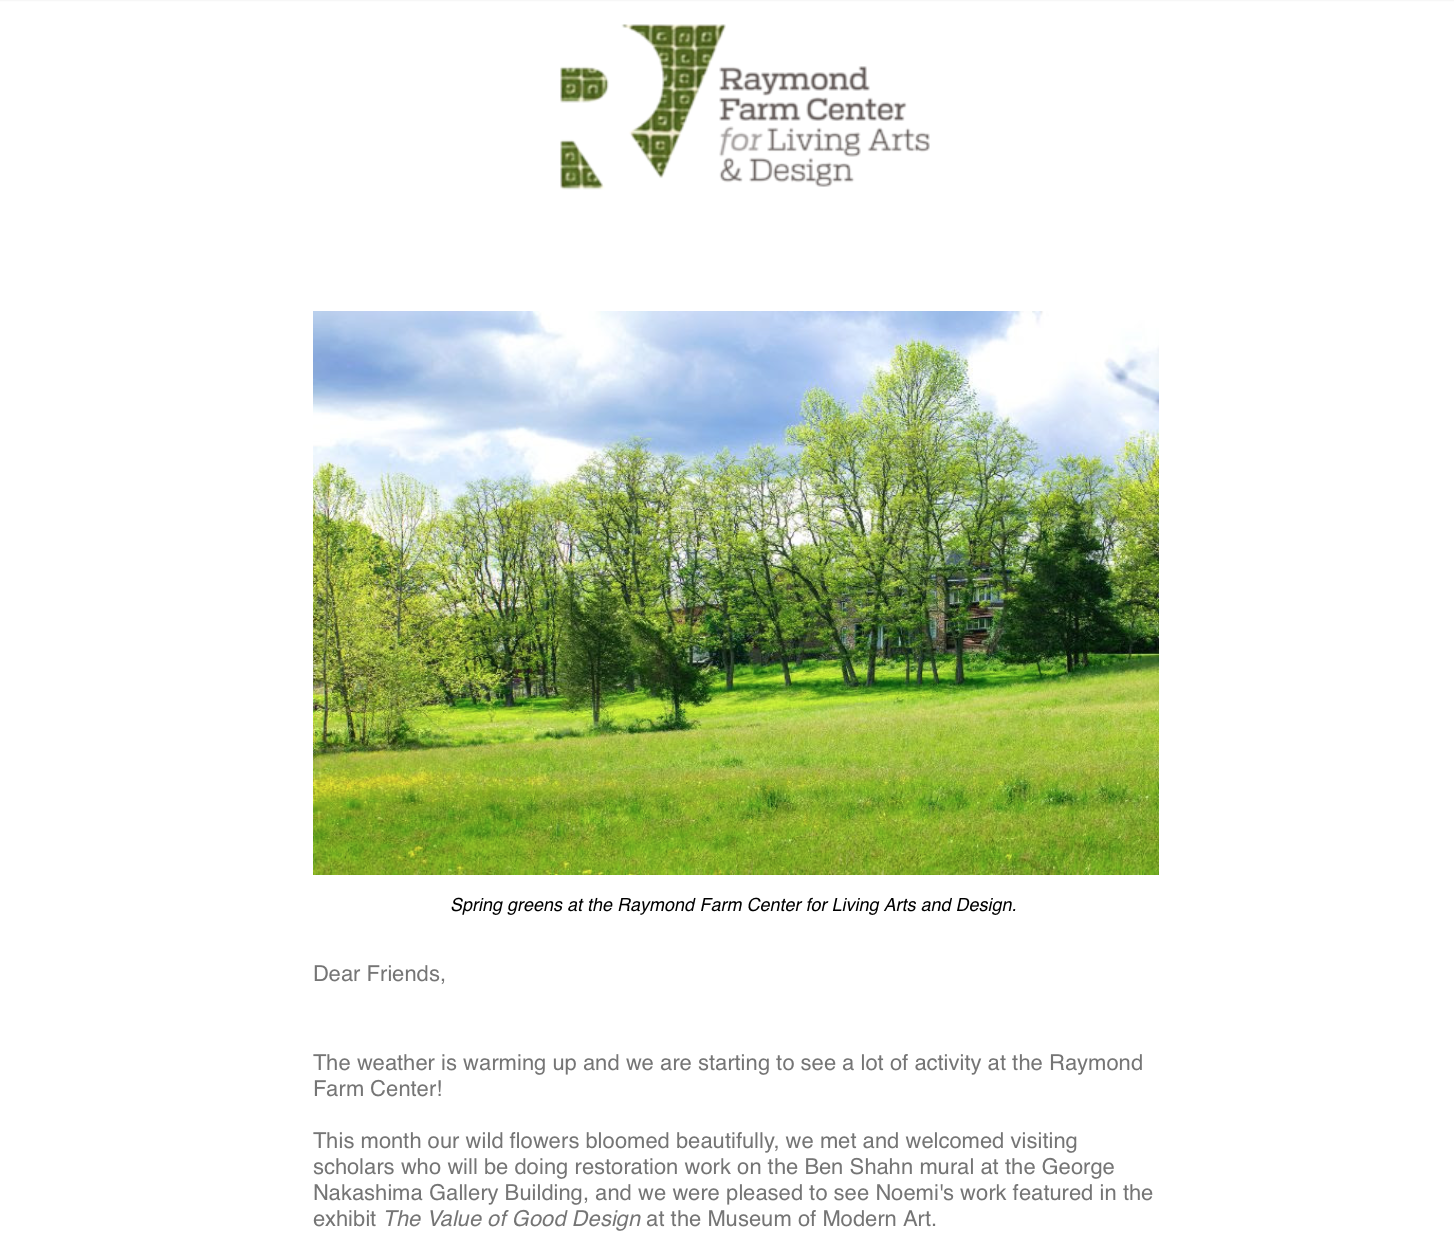 Past Newsletters - Read the monthly newsletters that covers what's been happening on the farm, upcoming events, and exhibits & research that highlights works done by Antonin and Noémi.Sign up to receive monthly RFC newsletters right in your inbox!